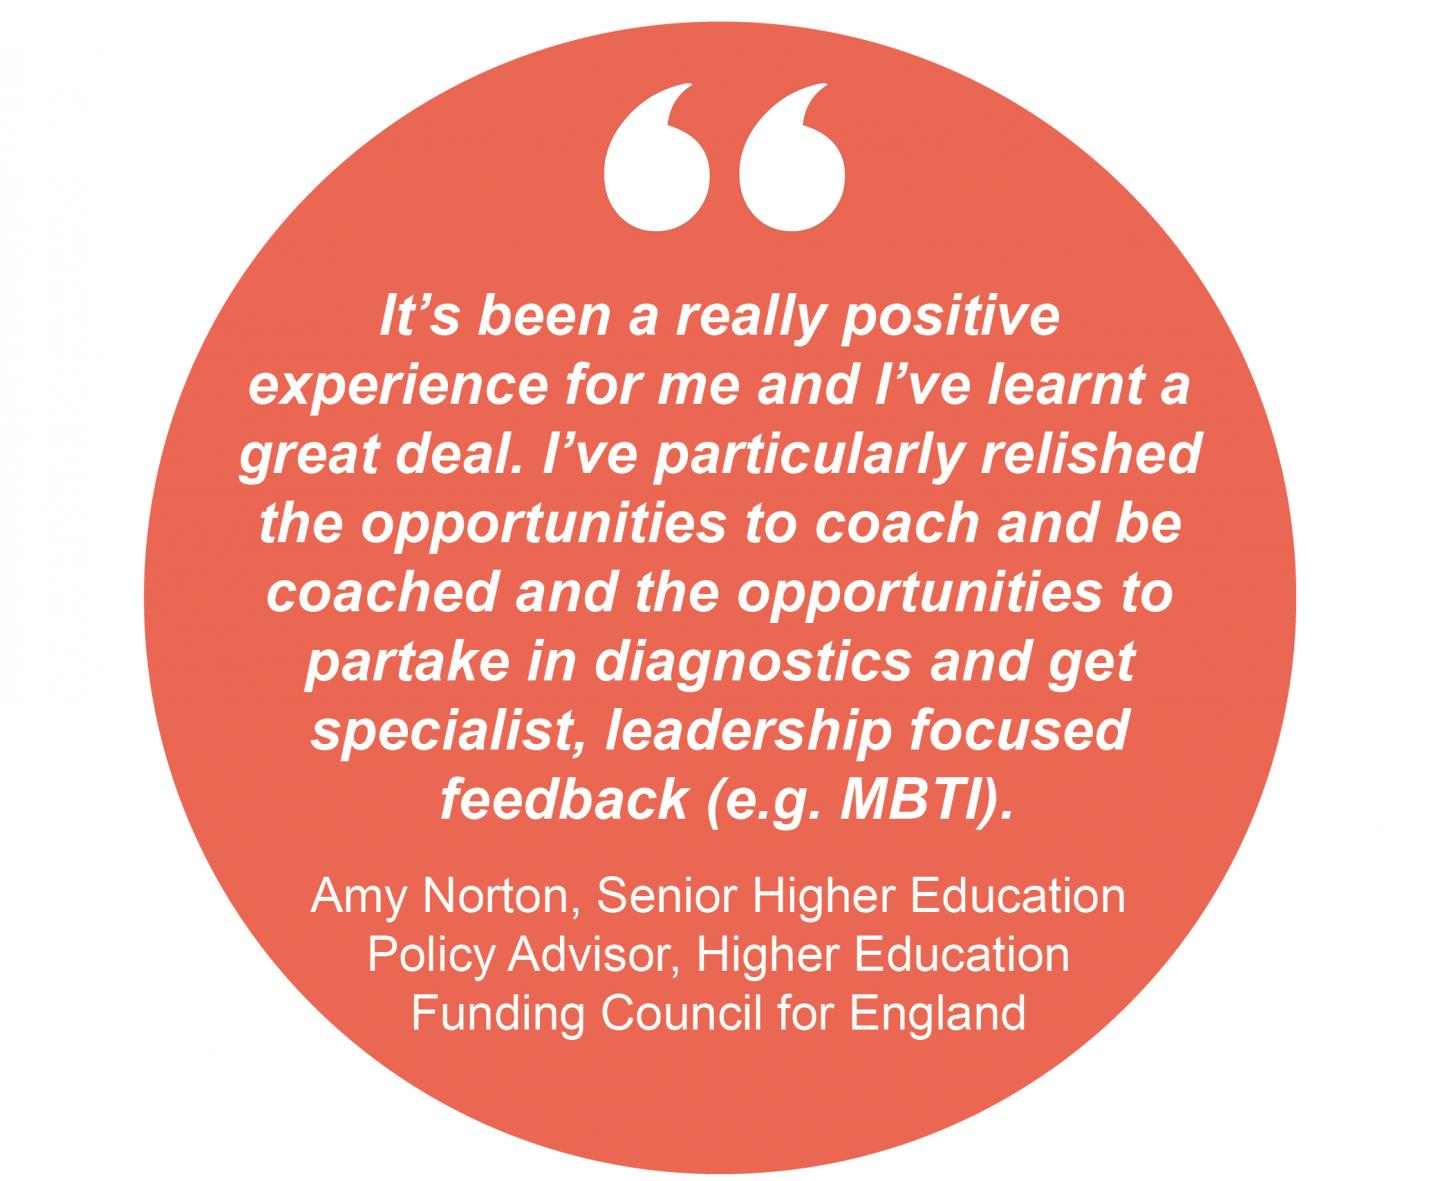 """It's been a really positive experience for me and I've learnt a great deal. I've particularly relished the opportunities to coach and be coached and the opportunities to partake in diagnostics and get specialist, leadership focussed feedback (e.g. MBTI)."" Amy Norton, Senior Higher Education Policy Advisor, Higher Education Funding Council for England"